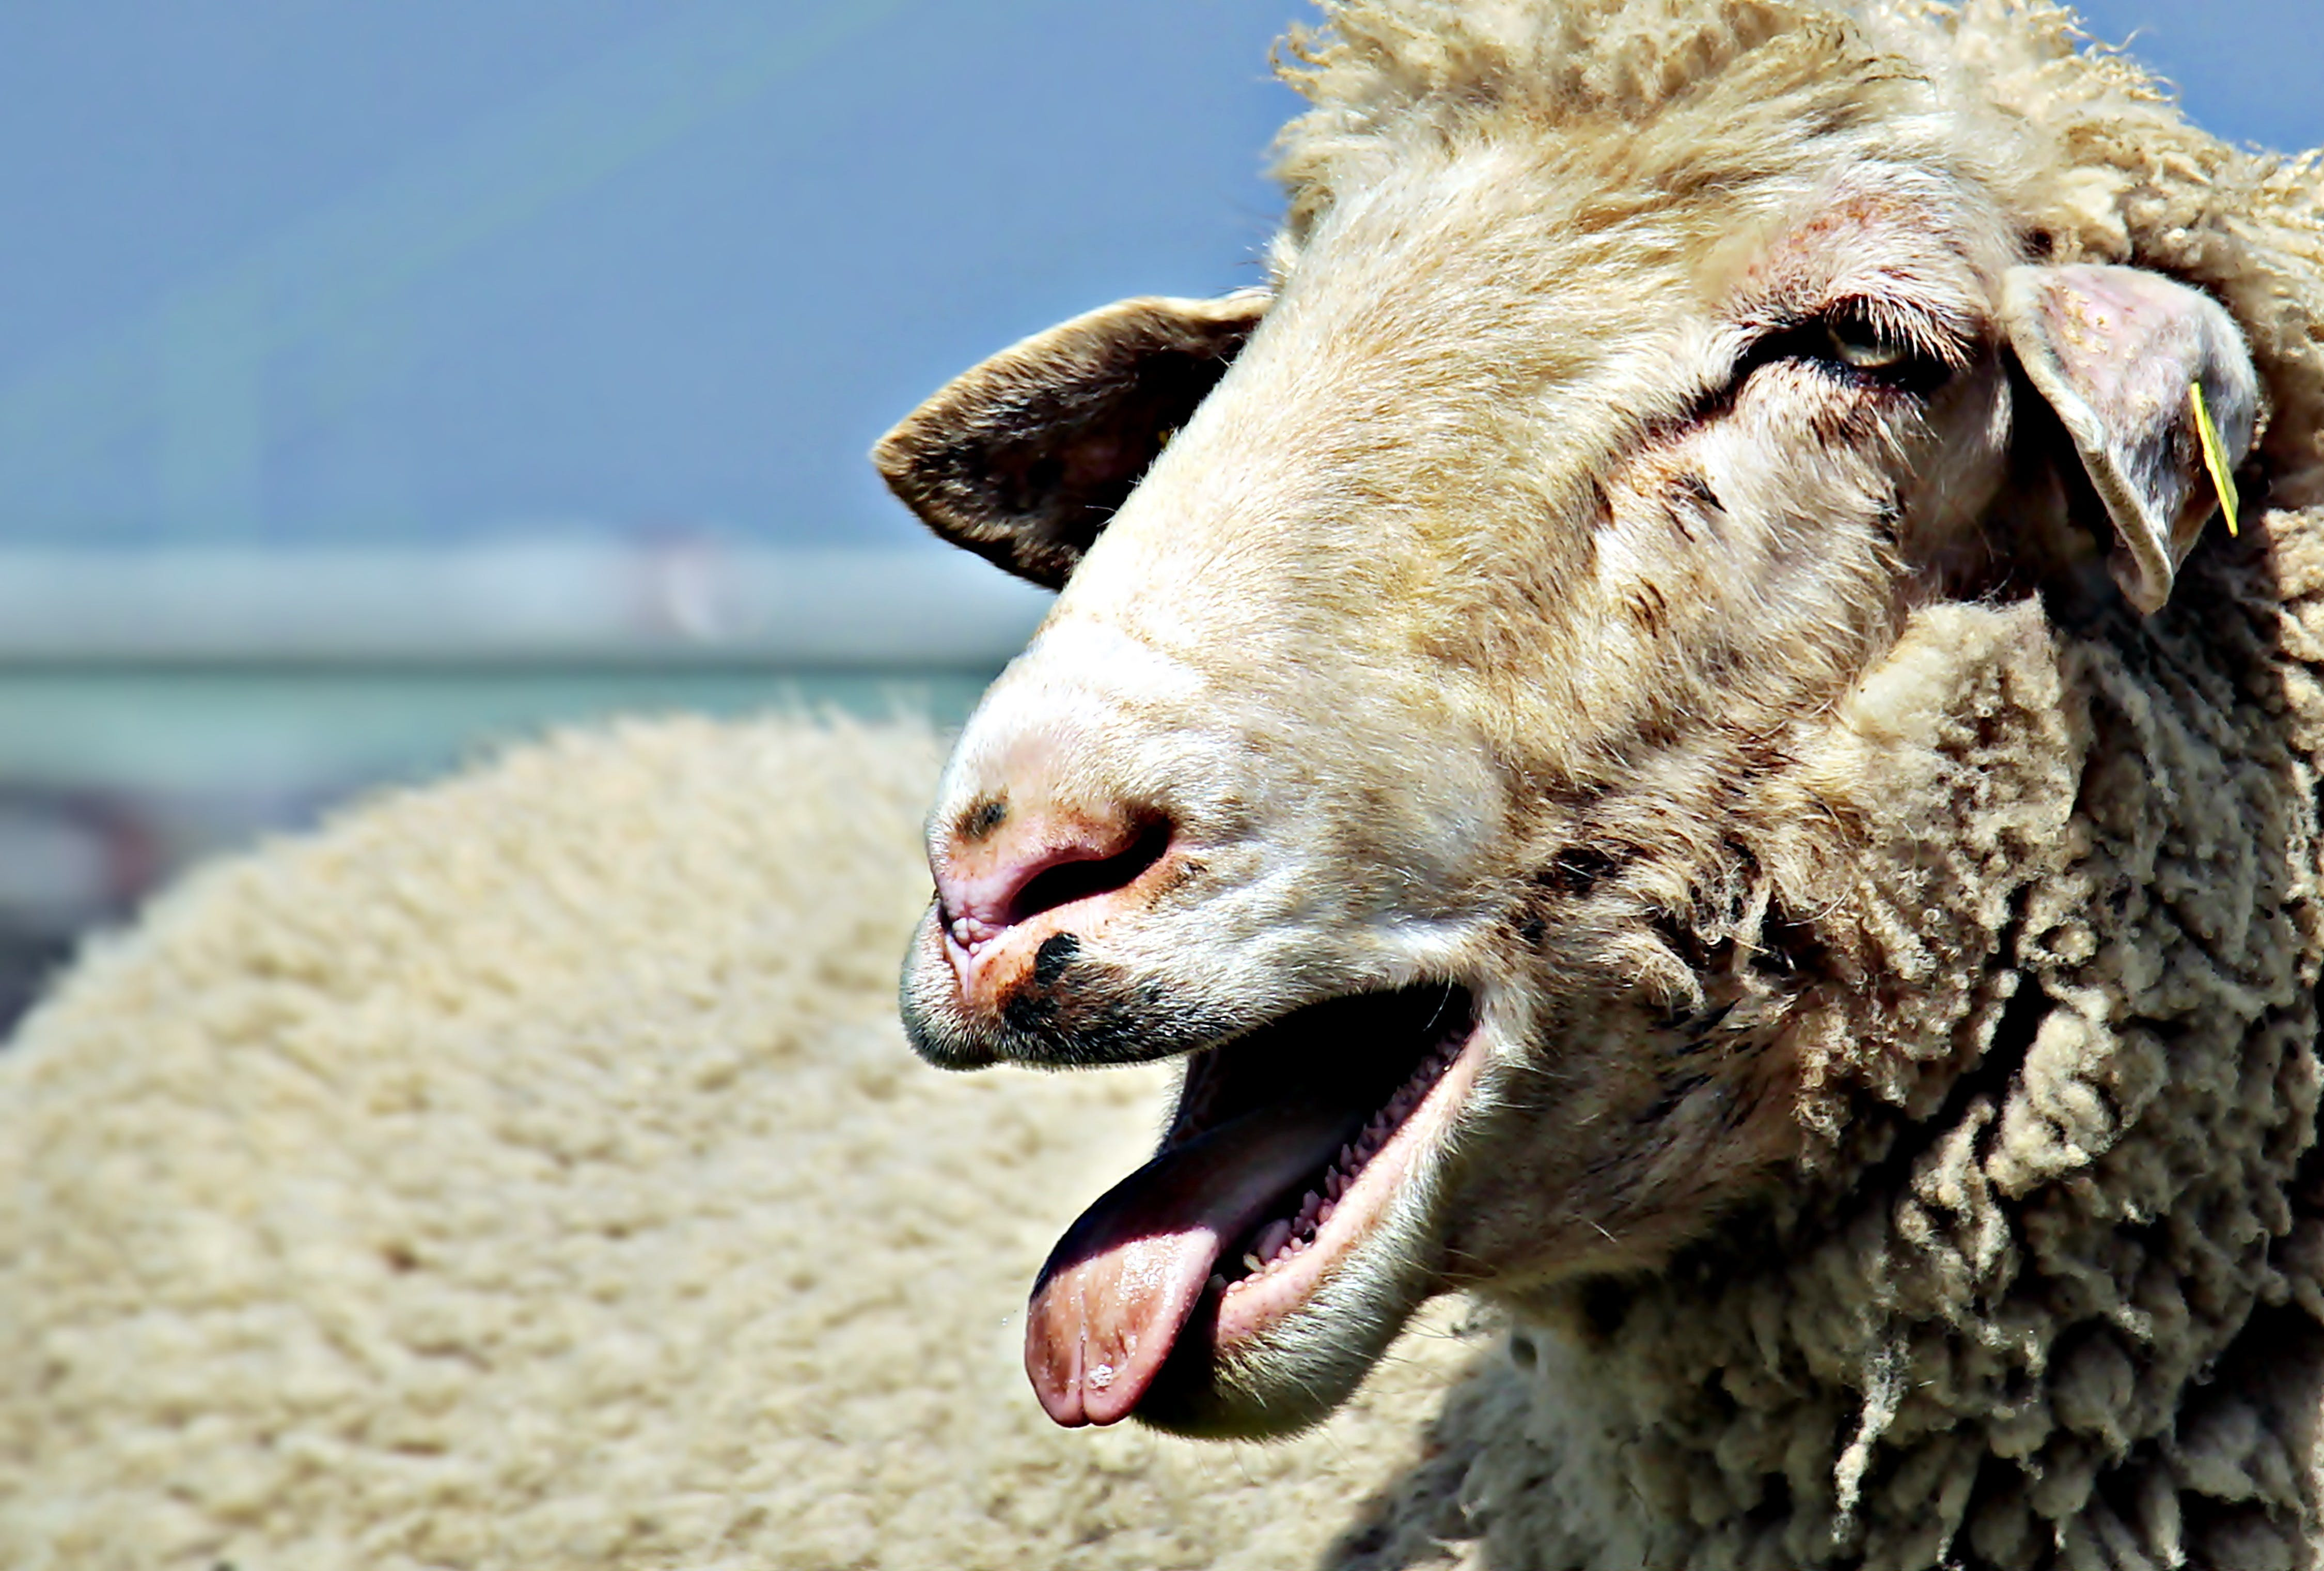 Sheep Opening Mouth